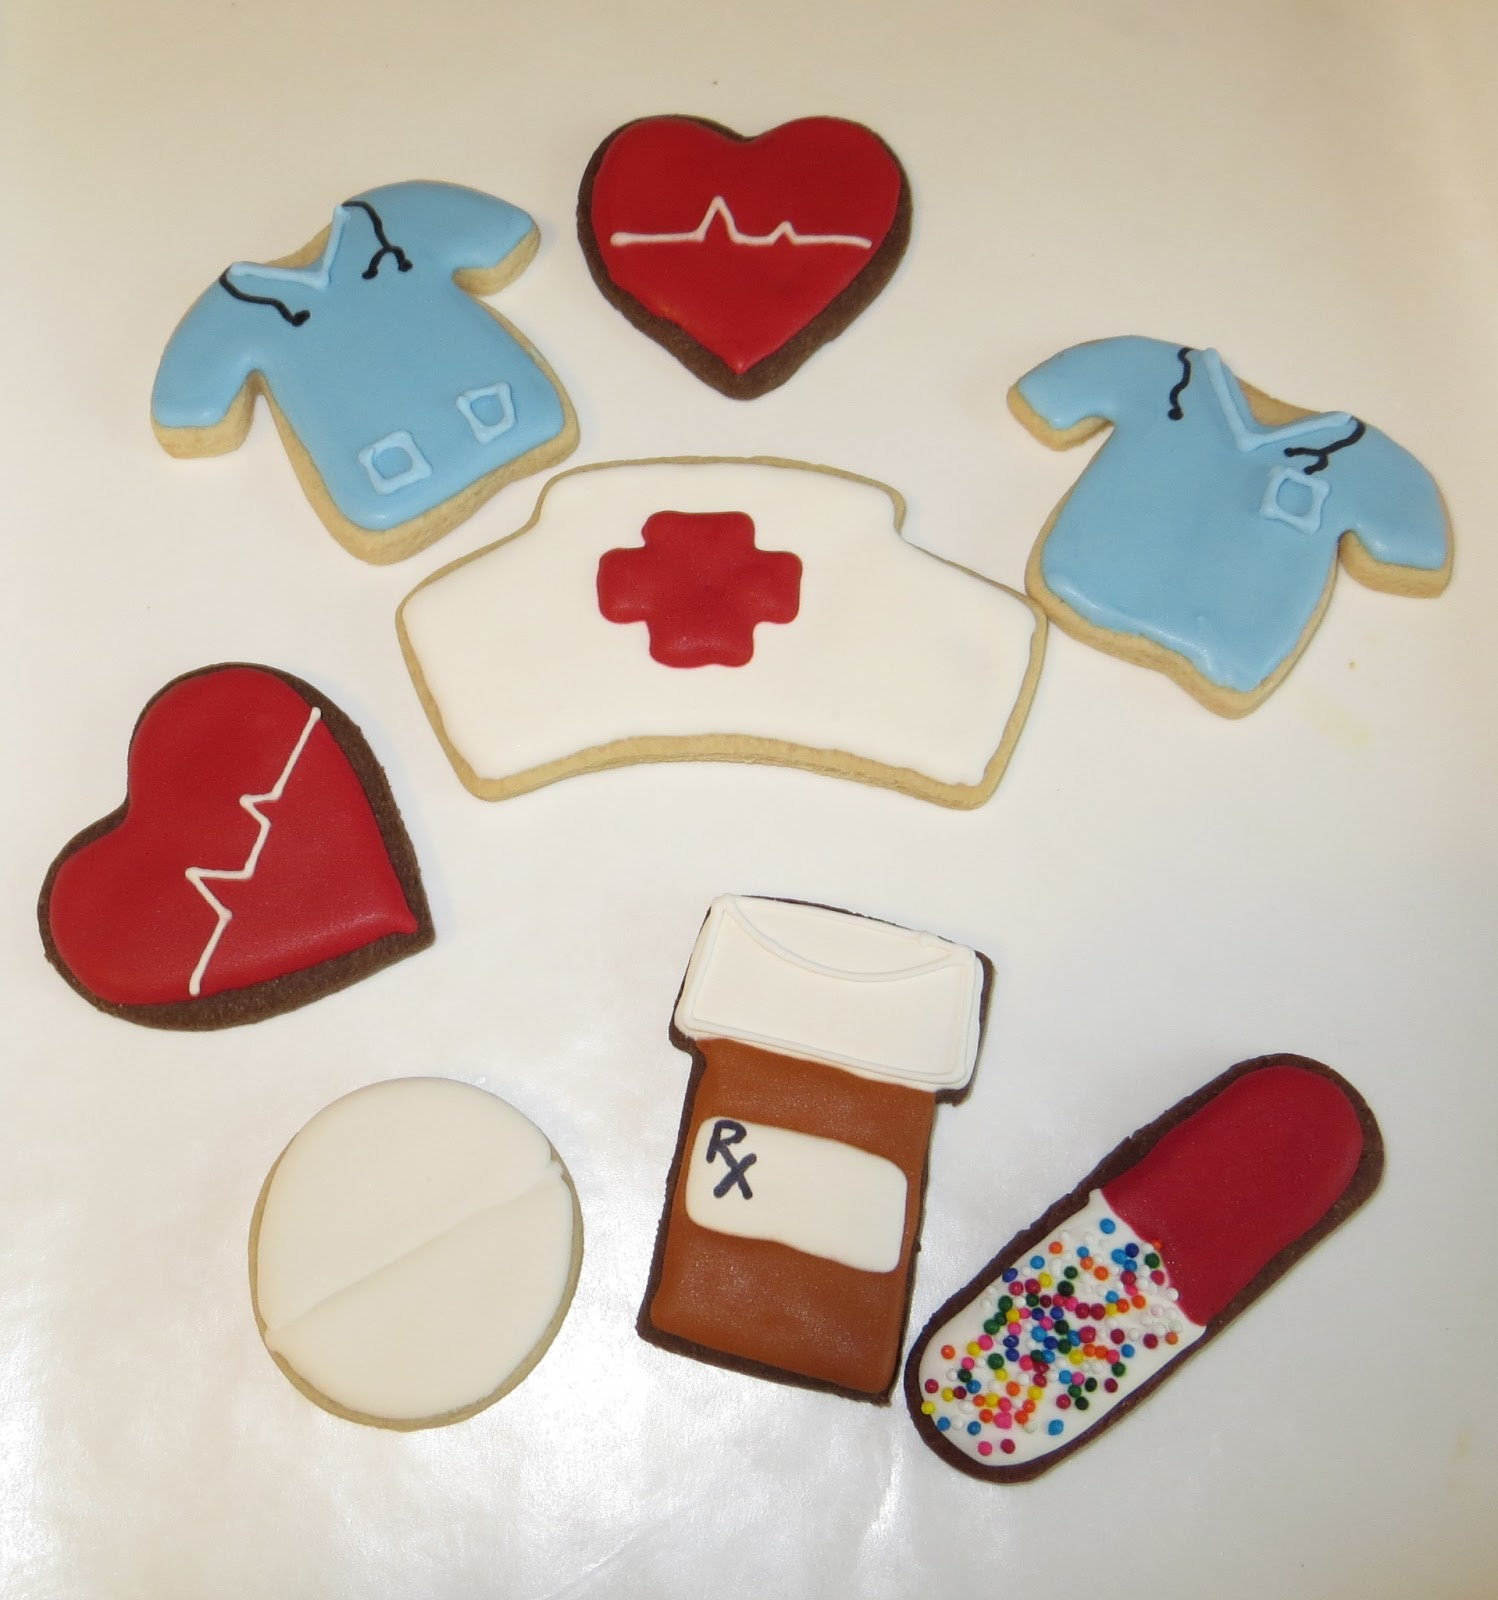 Chick n Biscuits Nurse Themed Cookies : IMG2454cr from achicknbiscuits.blogspot.com size 1498 x 1600 jpeg 201kB